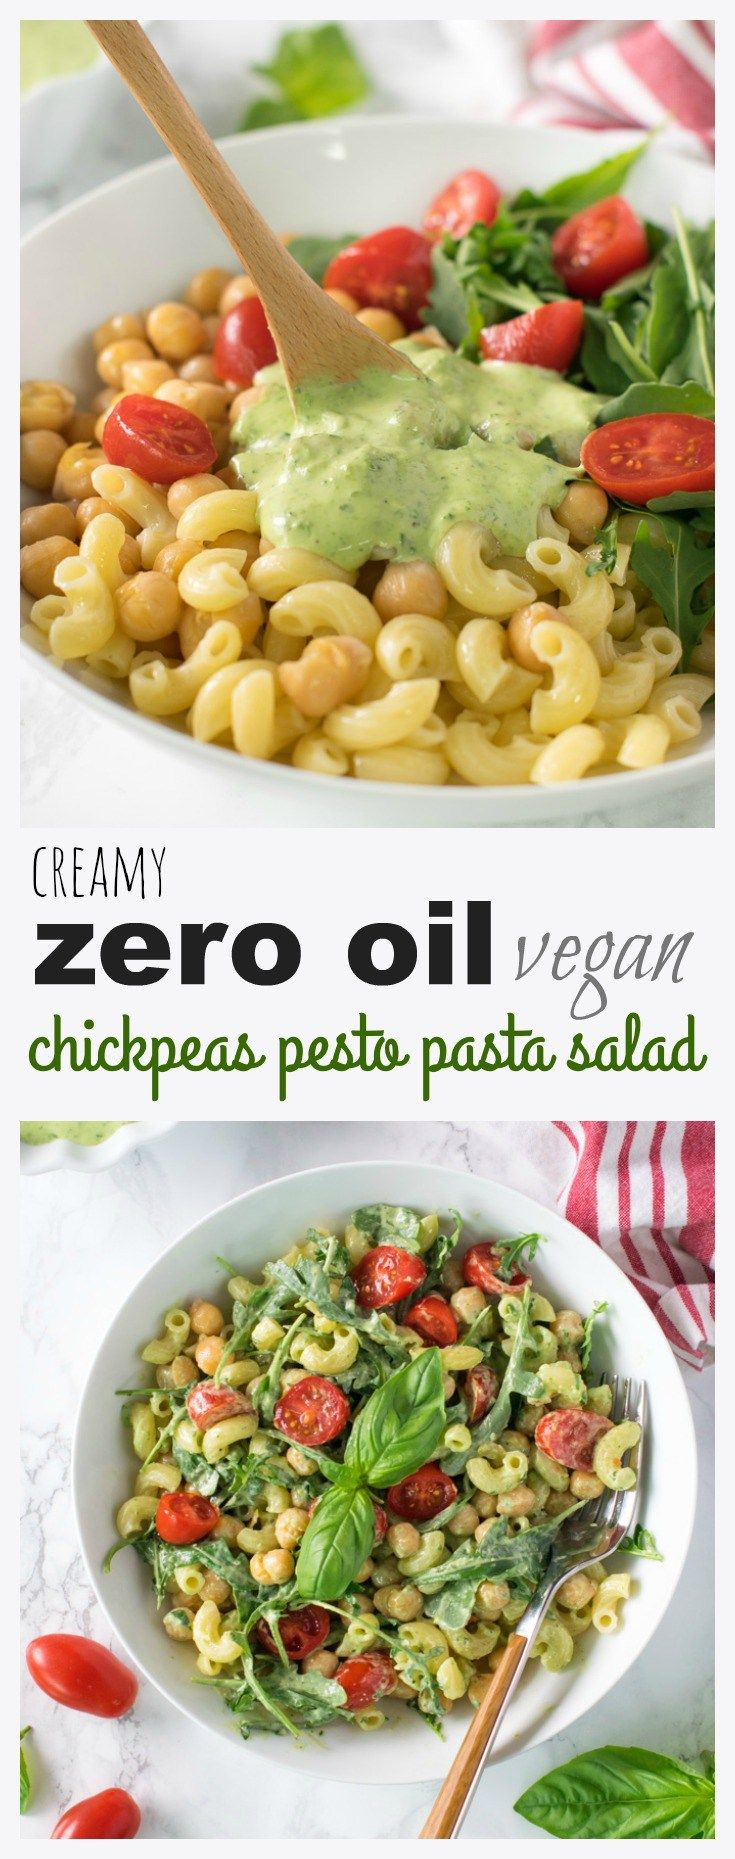 zero oil chickpeas pesto pasta salad   Vegan chickpeas pesto pasta salad recipe is a great option for indoors or outdoor meal. Easy and delicious .